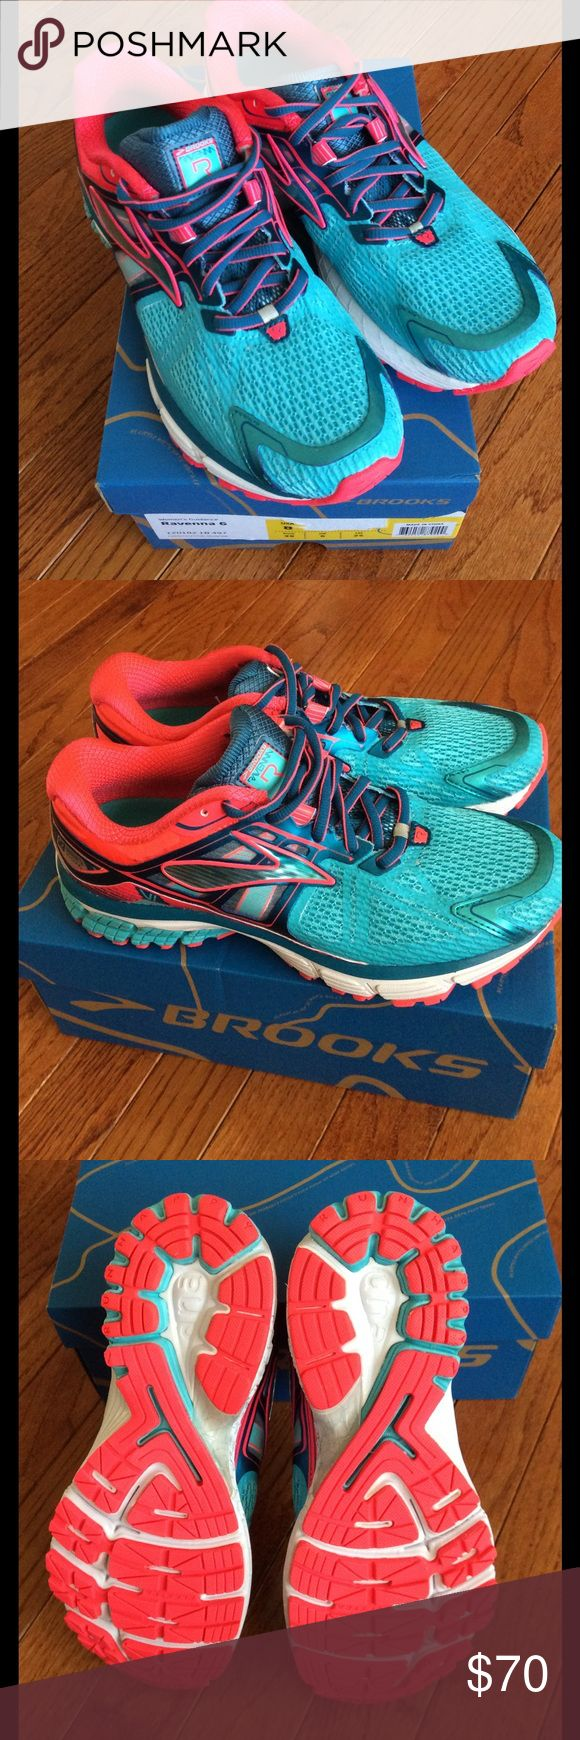 🆕 BROOKS ravenna shoes women's size US 8 These are brand new Brooks ravenna 6 shoes  women's size US 8 EU 39 Retails $110  ***PRICE IS FIRM***  My sister purchased these for cross country this season, but haven't worn them. Last one!   NO OFFERS or NEGOTIATIONS please!  Thank you for understanding  :)   I also have a NEW Brooks adrenaline size 8 if interested- please see my other listings :) Brooks Shoes Athletic Shoes